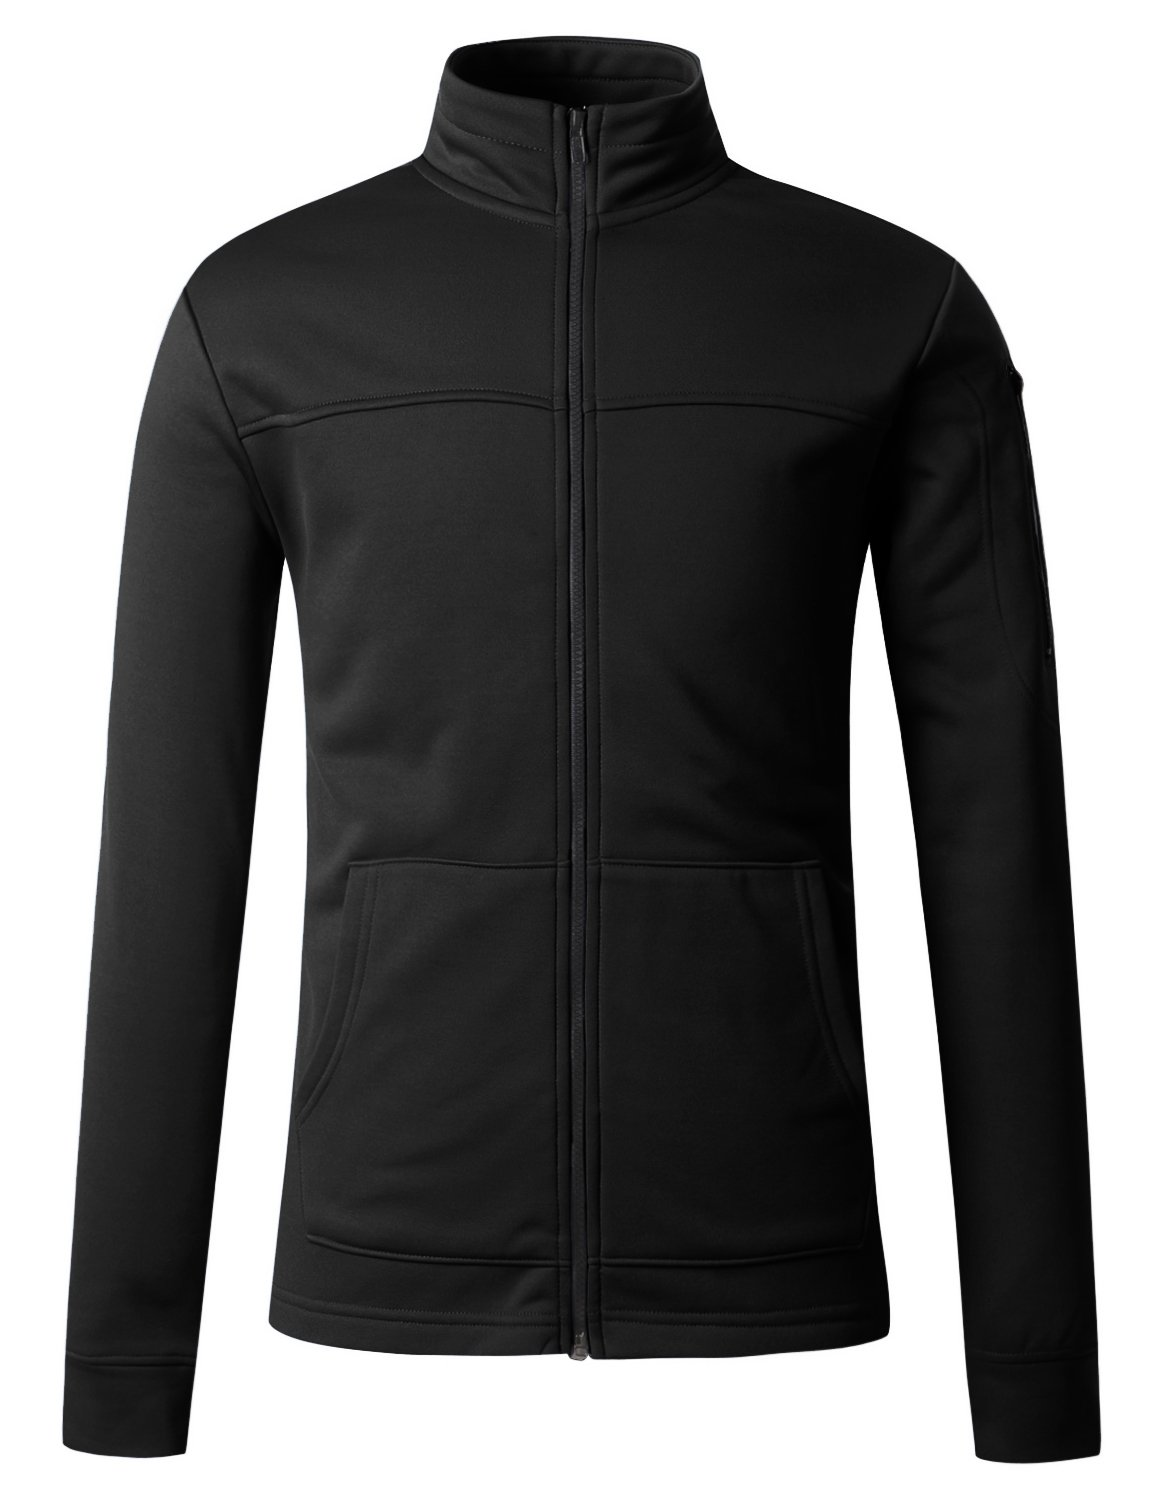 Regna X Mens Zipped Pockets Track Black Medium Fleece Arm Pocket Jackets by Regna X